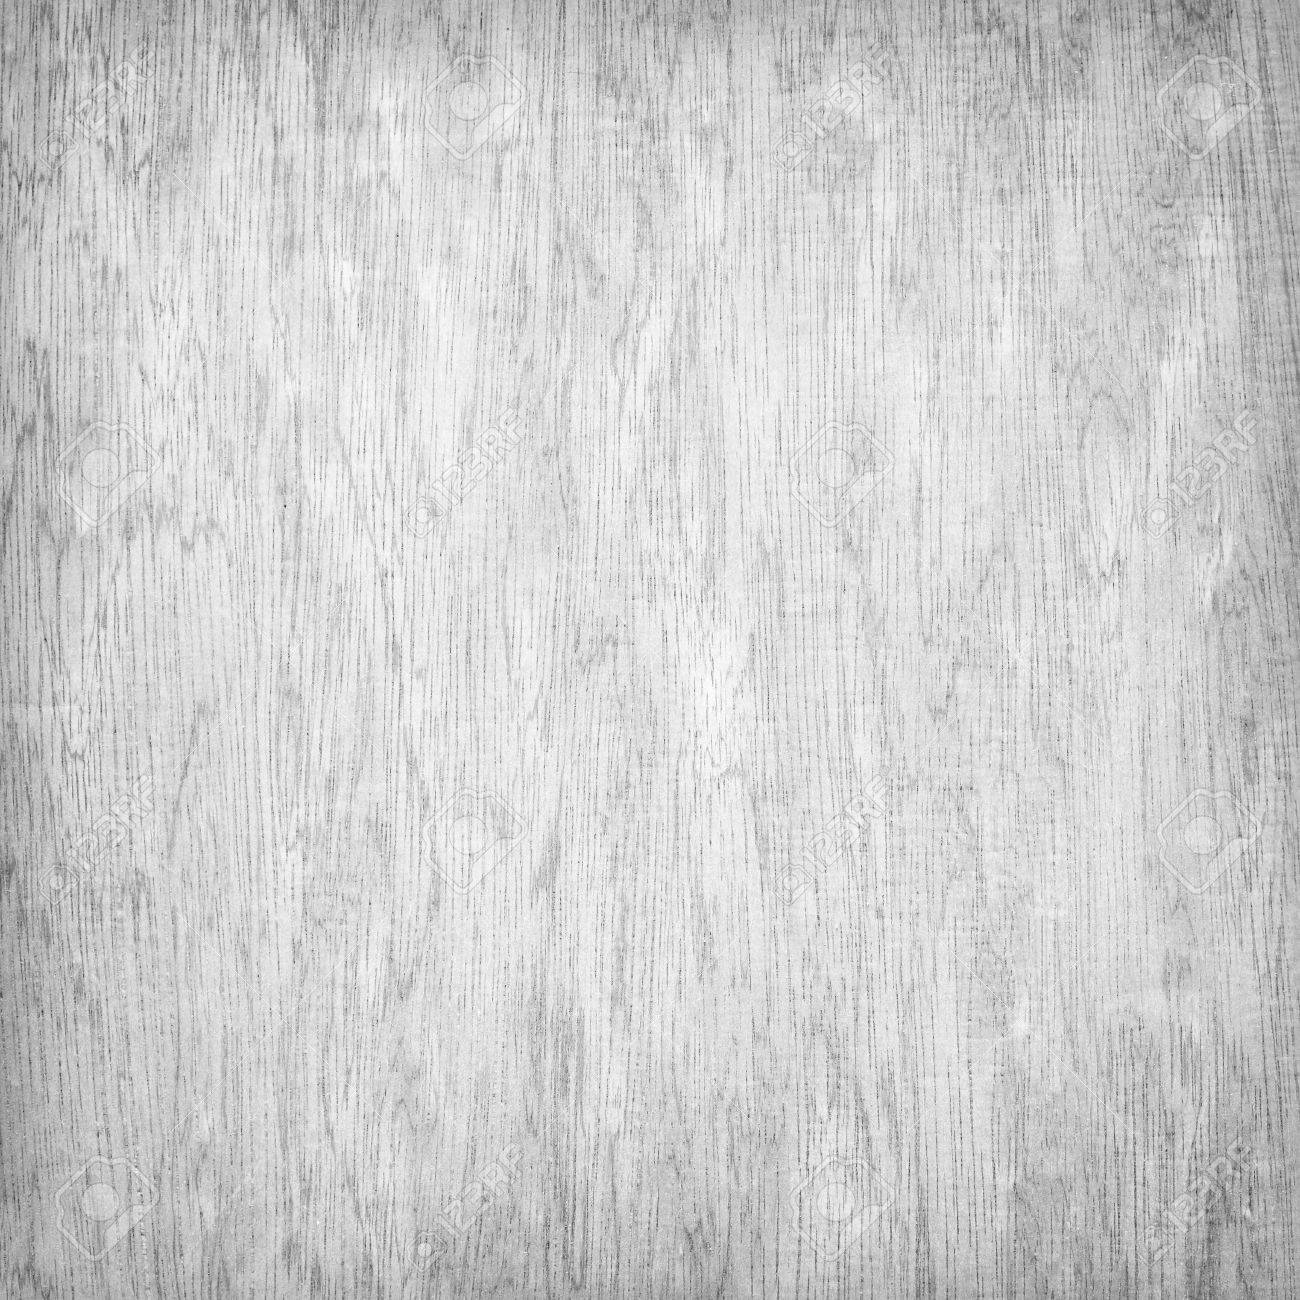 White Plywood Texture Gray Wood Background